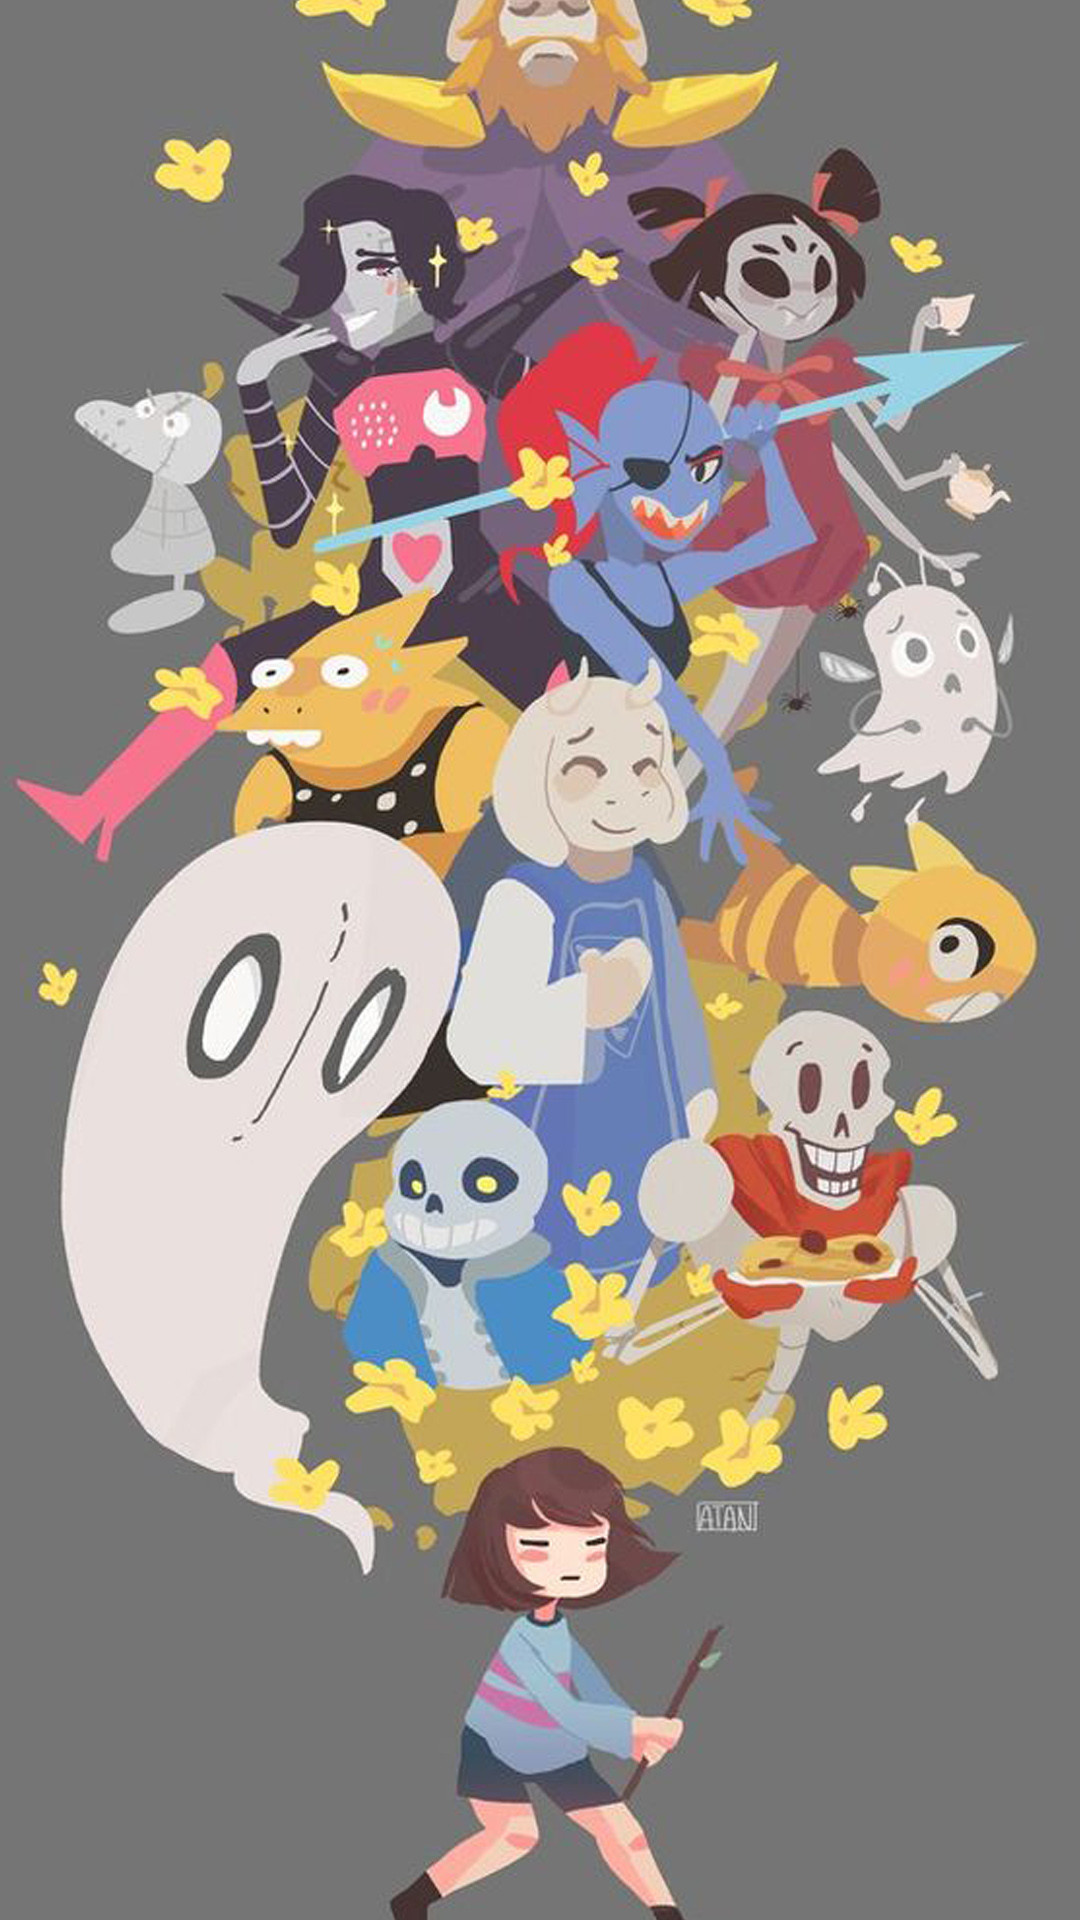 1080x1920 Undertale cool phone backgrounds Undertale cool iphone wallpapers